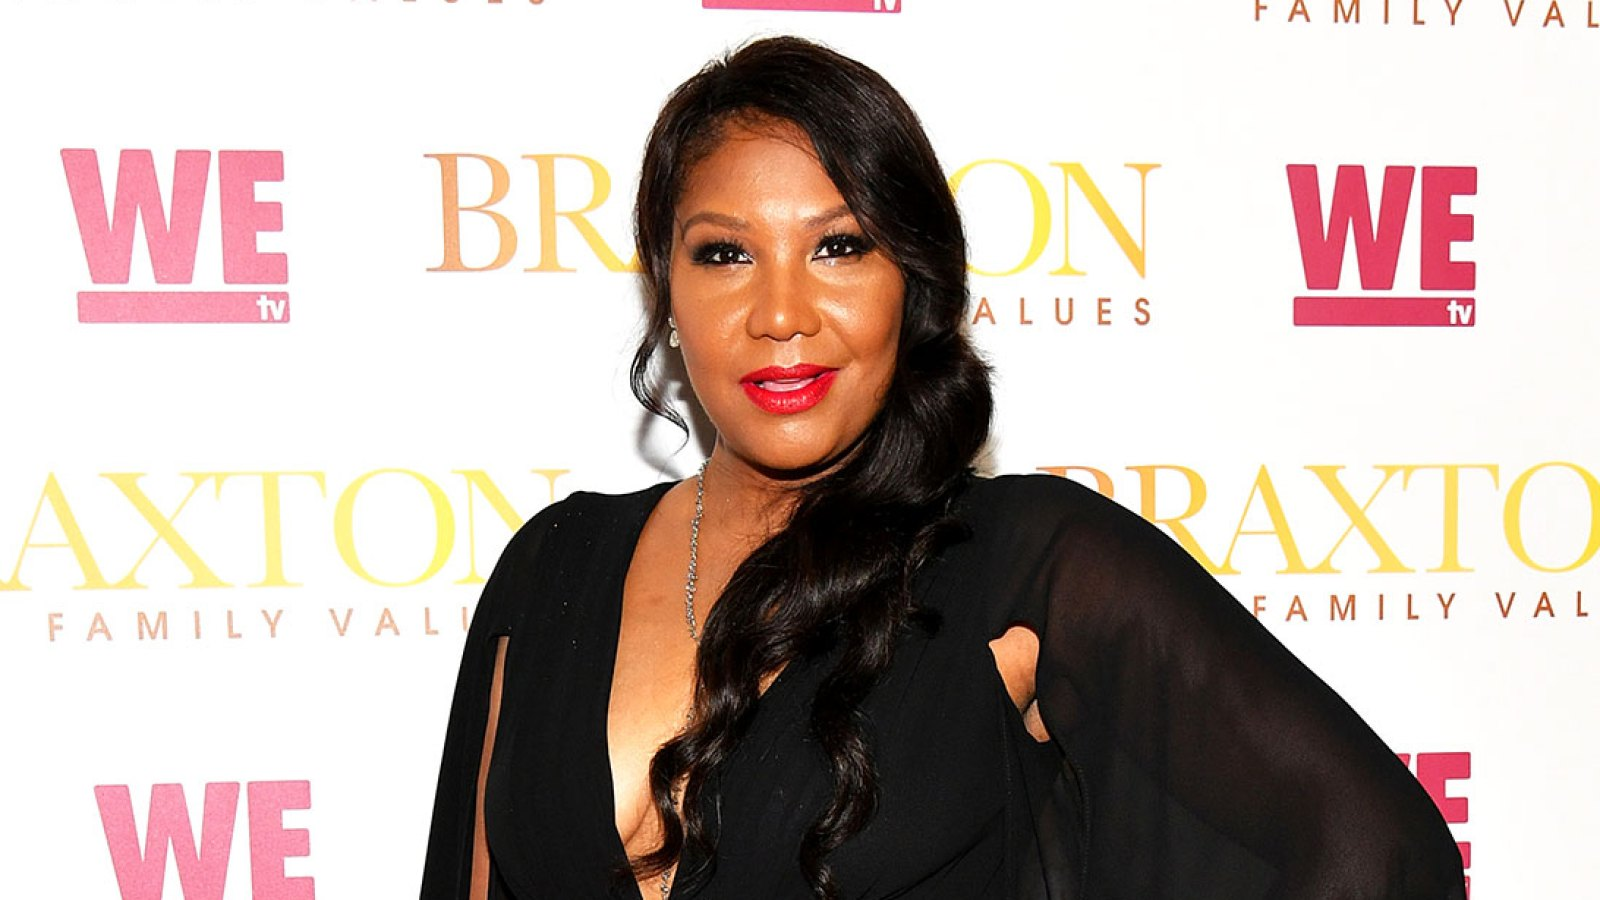 tamar-braxtons-sister-traci-braxton-shares-a-message-to-help-people-who-are-struggling-during-the-pandemic